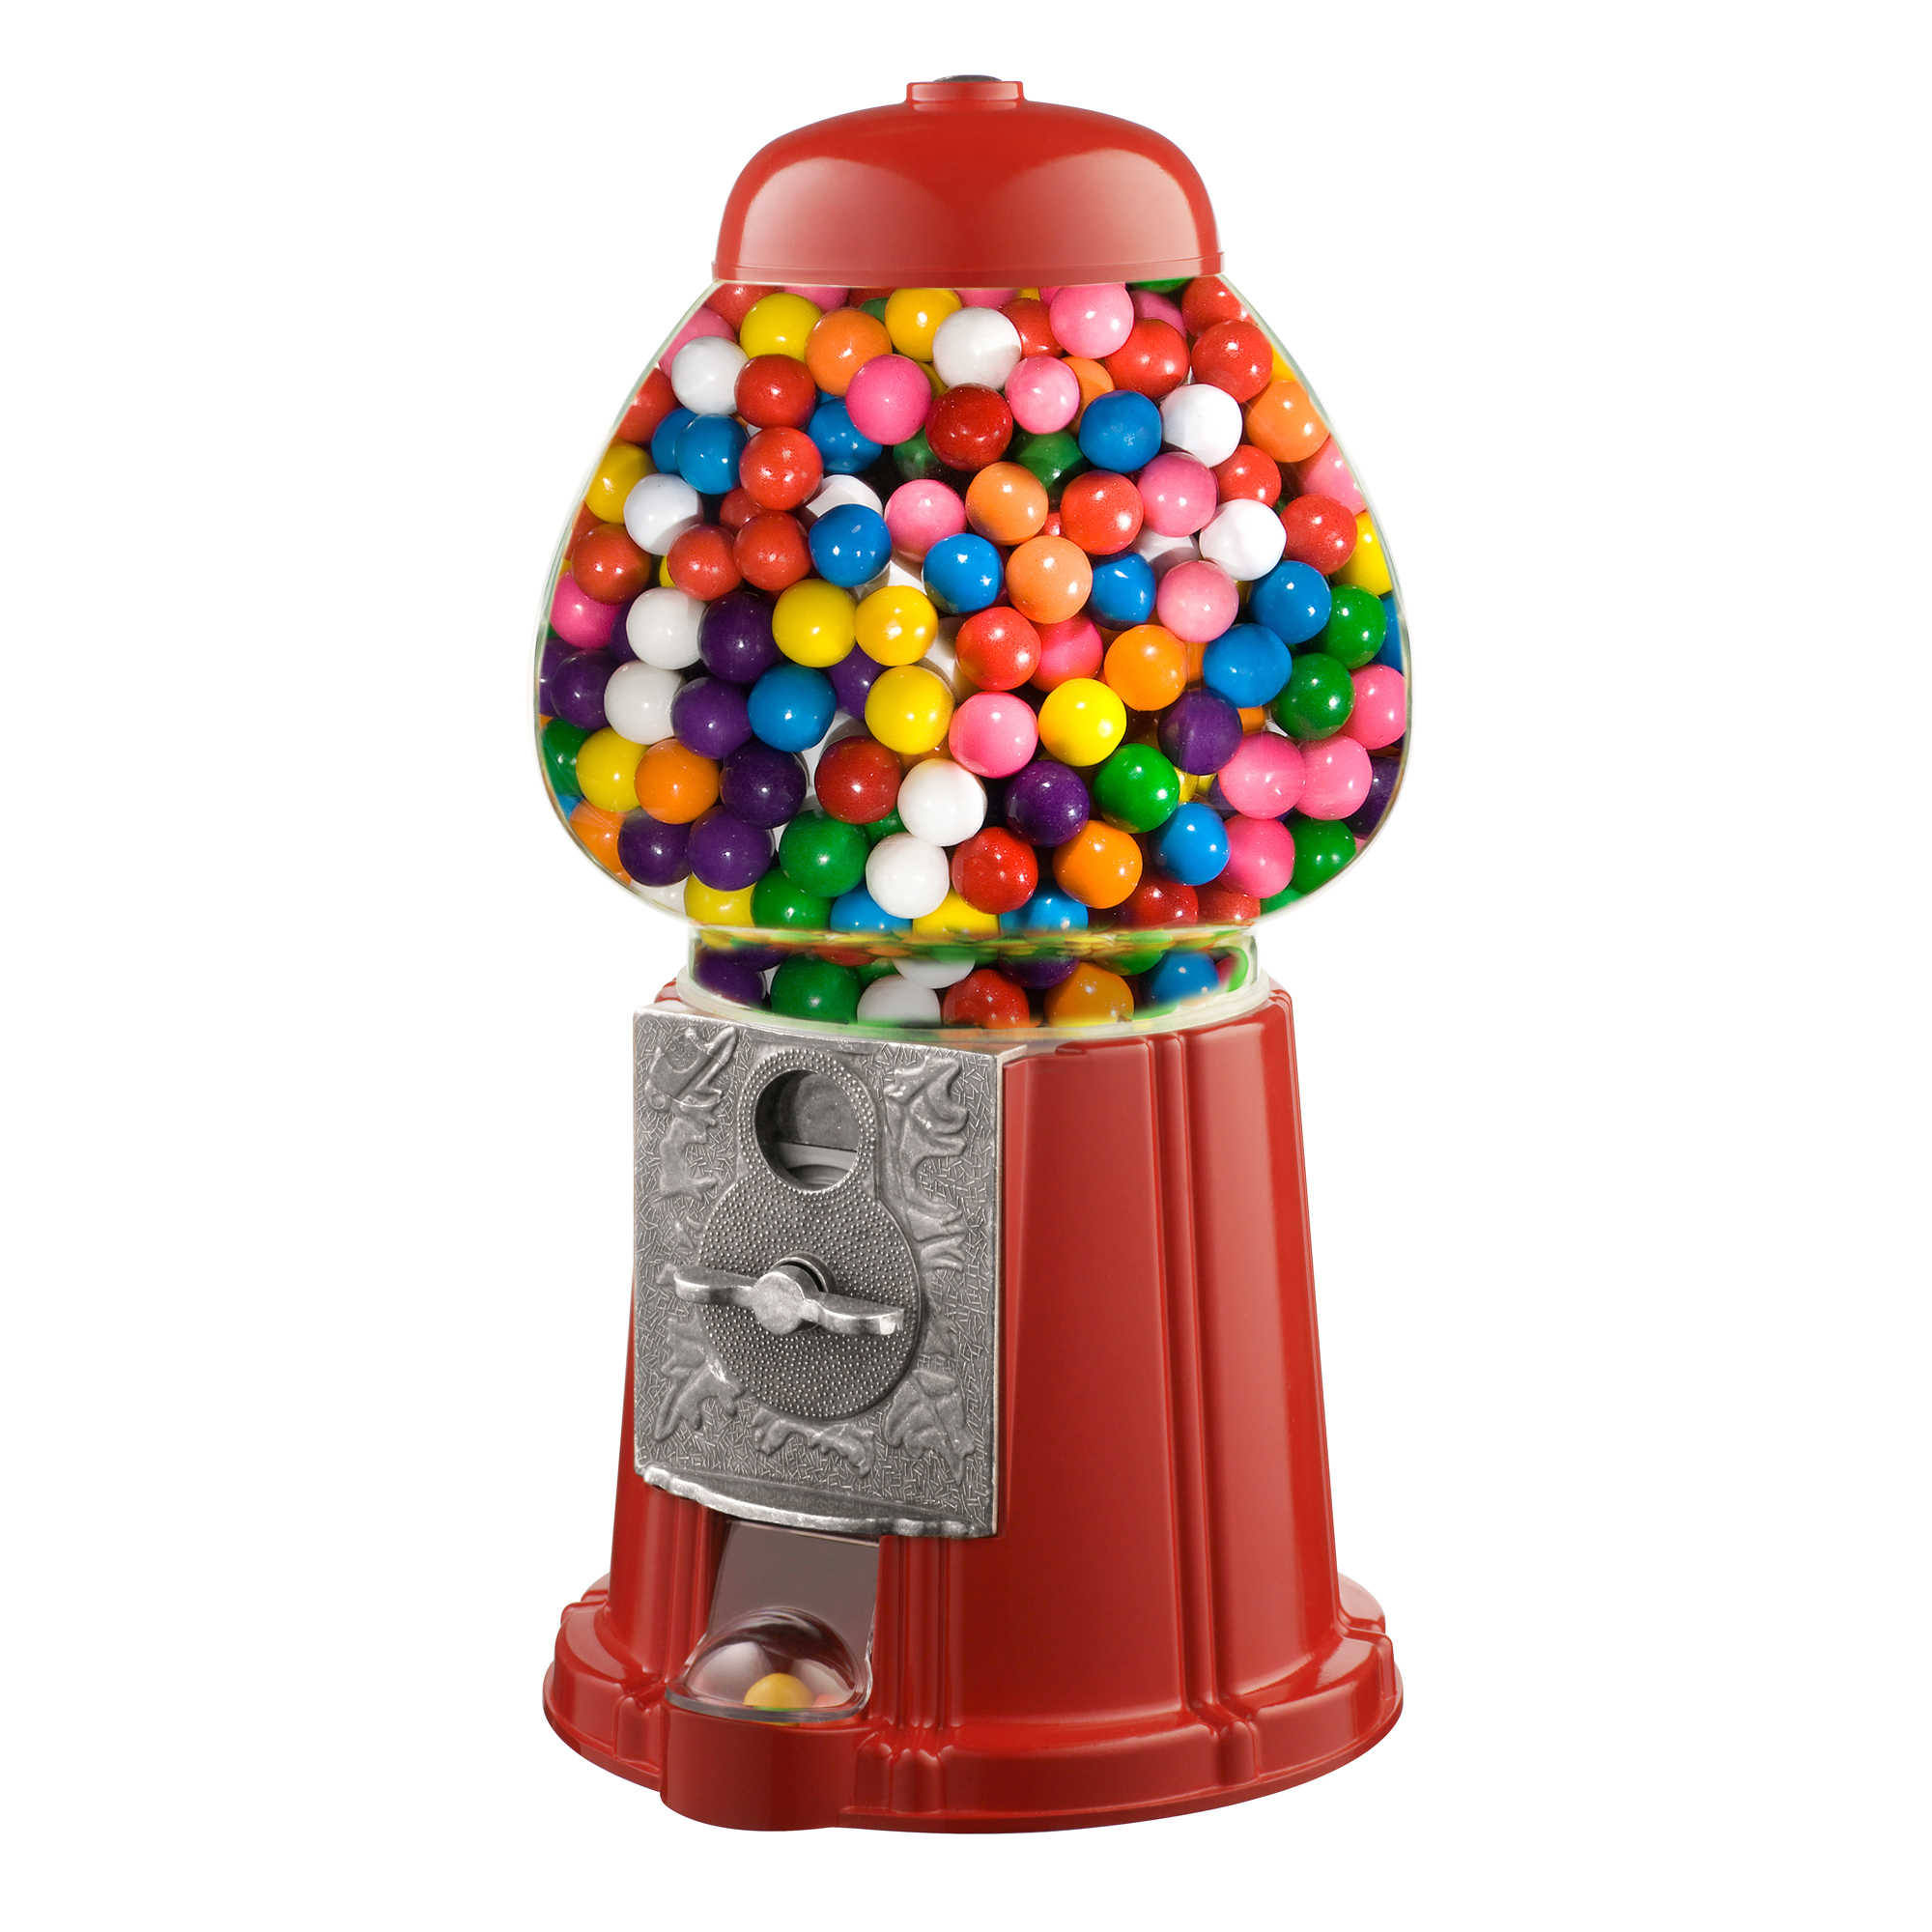 pictures of gumball machine